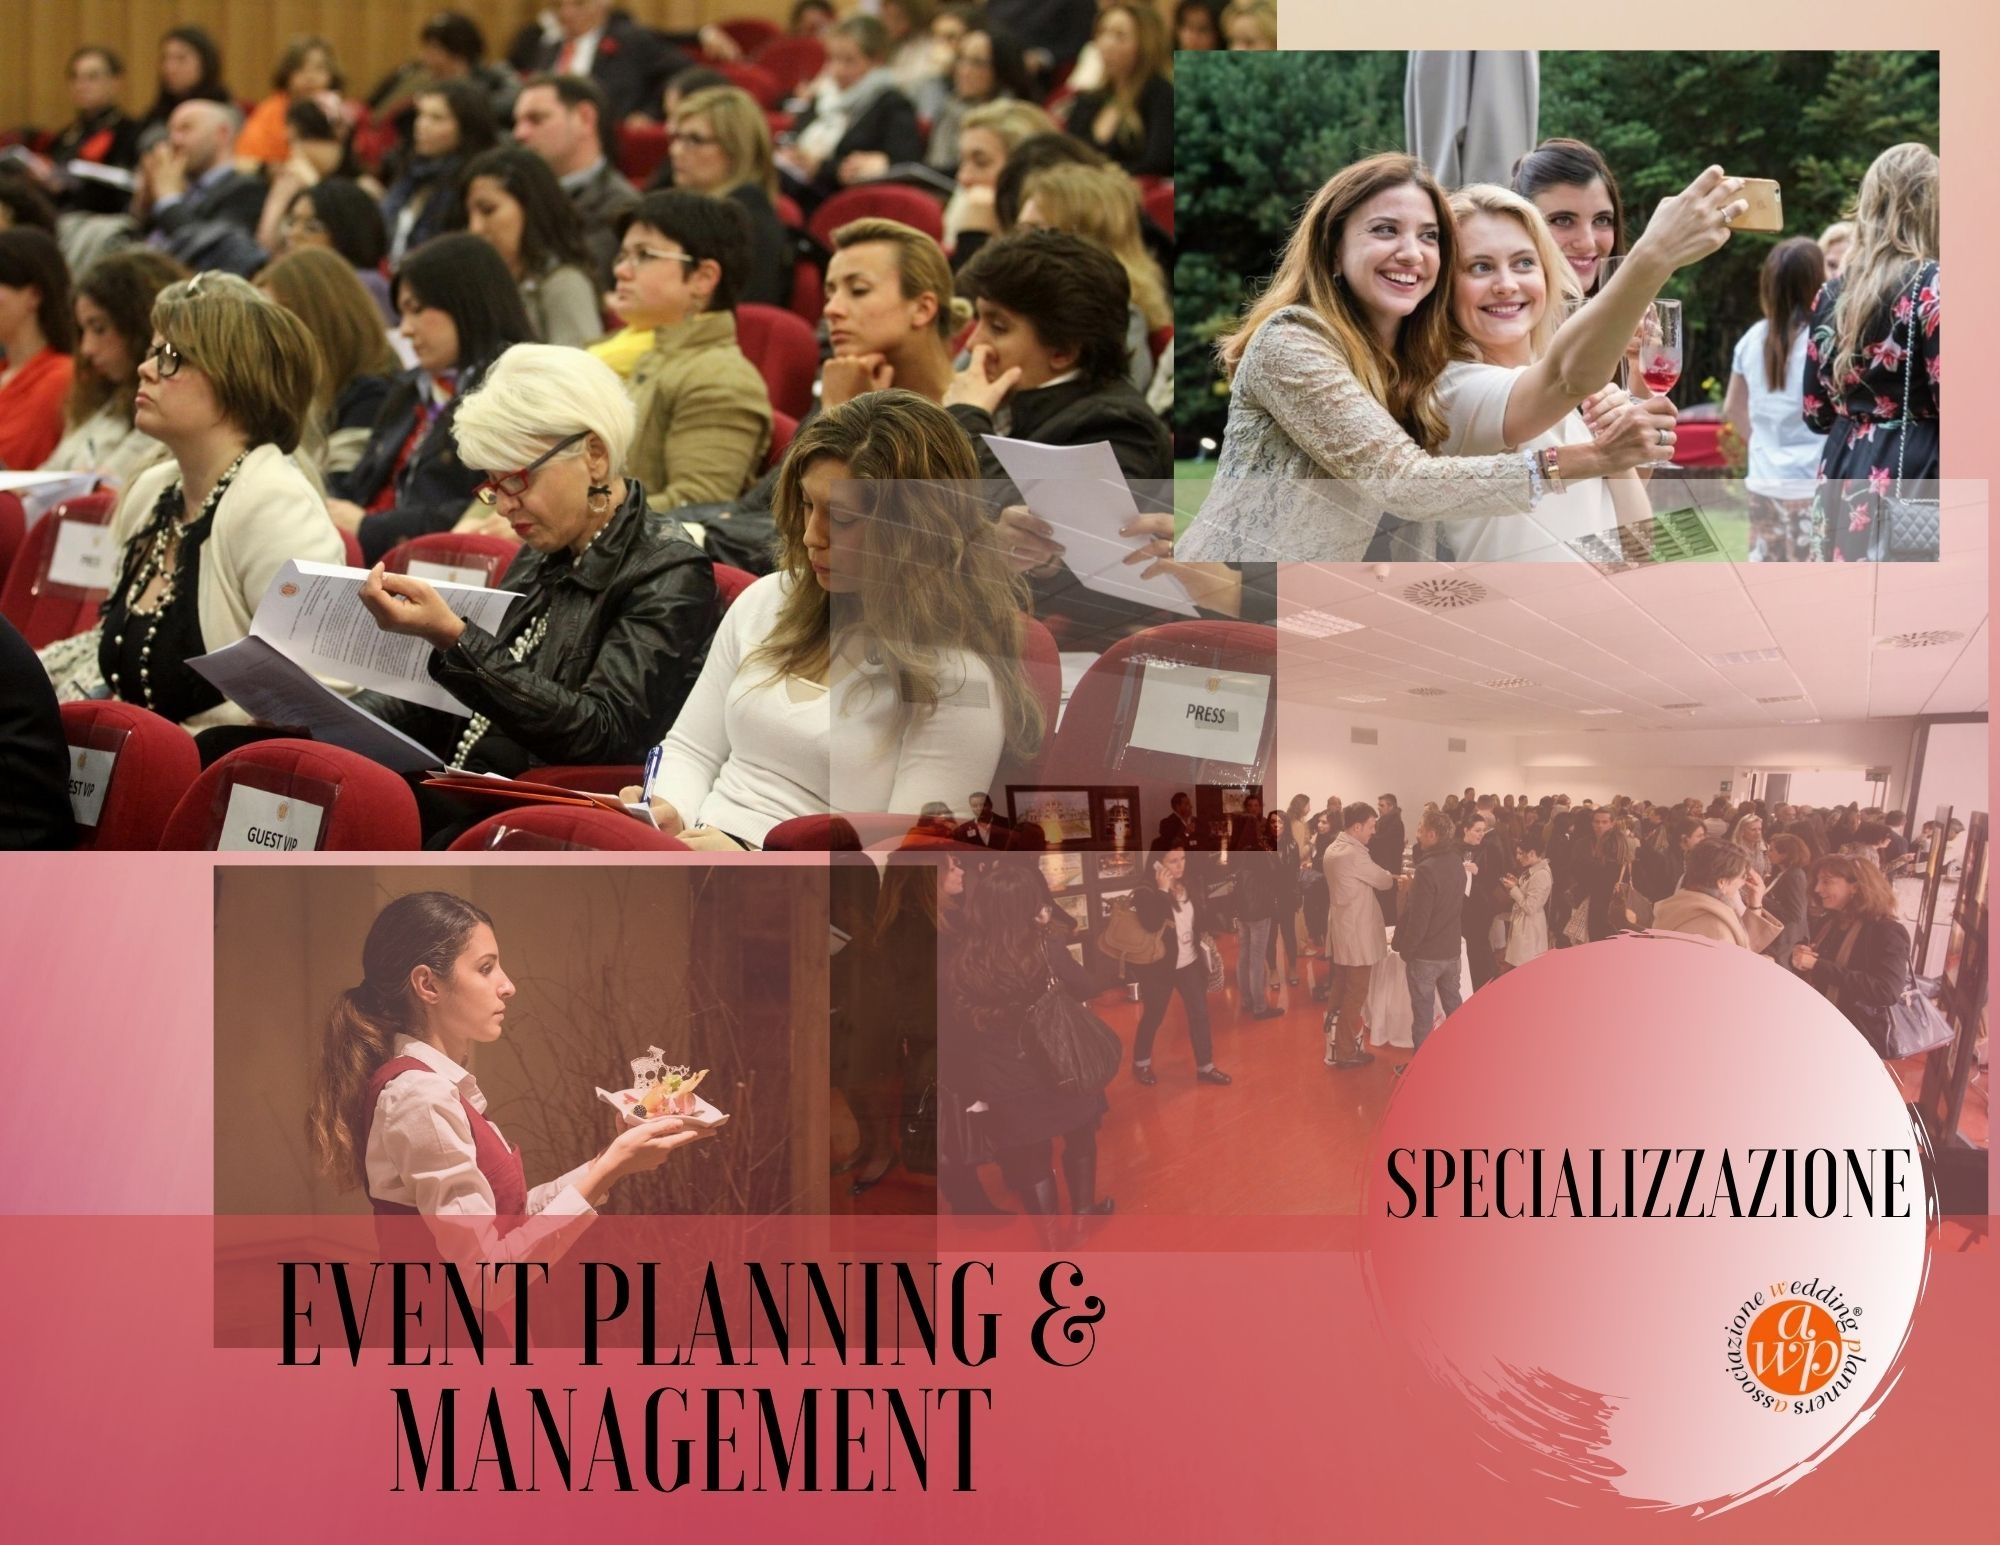 AssoWeddingEVENTplanningandmanagement